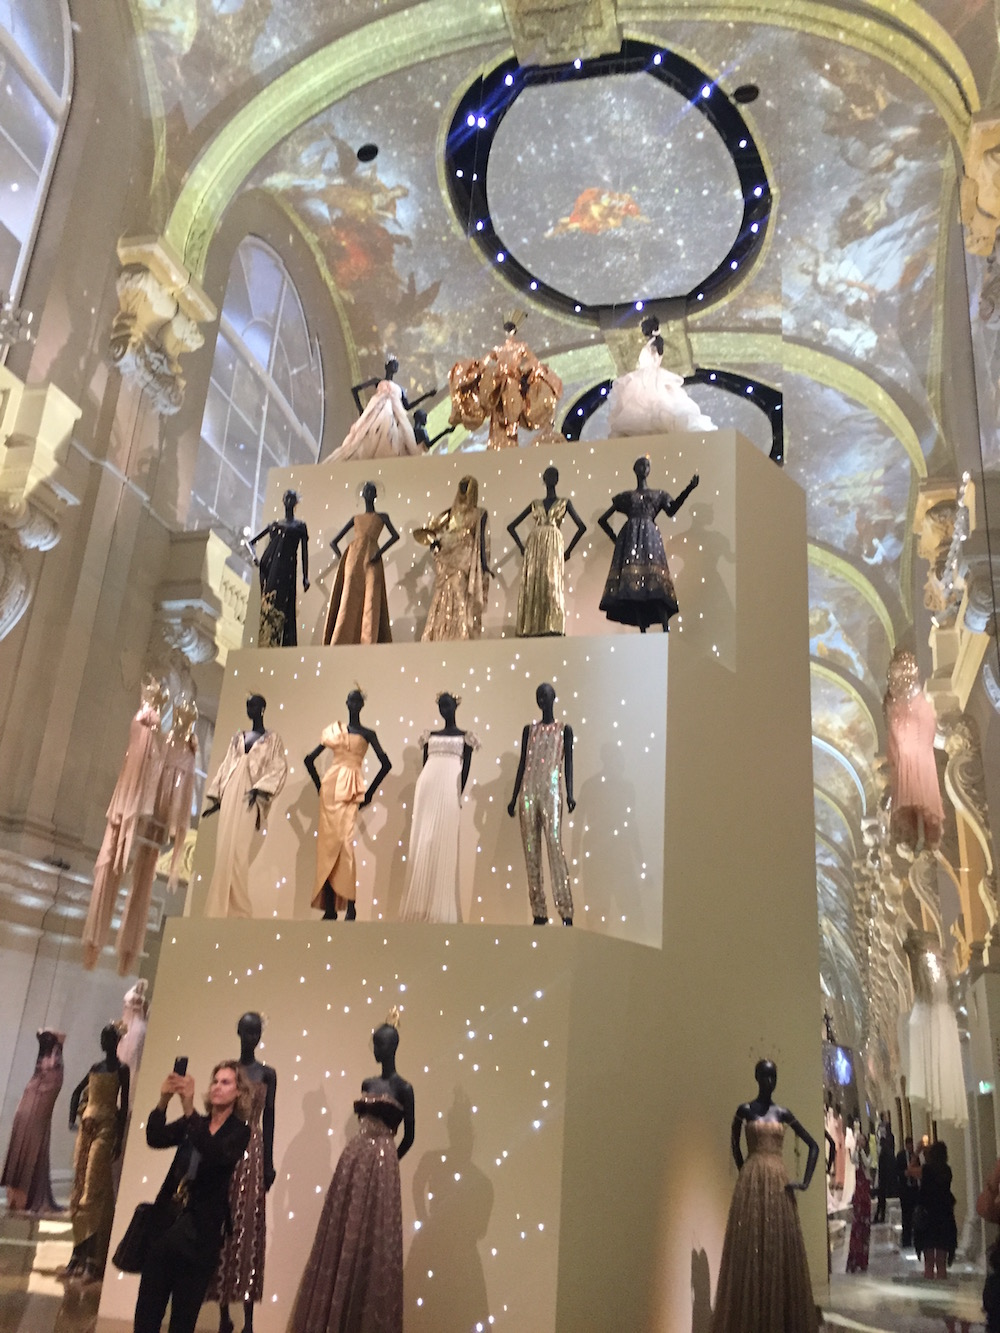 The Christian Dior exhibit at Les Arts Décoratifs is from July 5 to January 7.